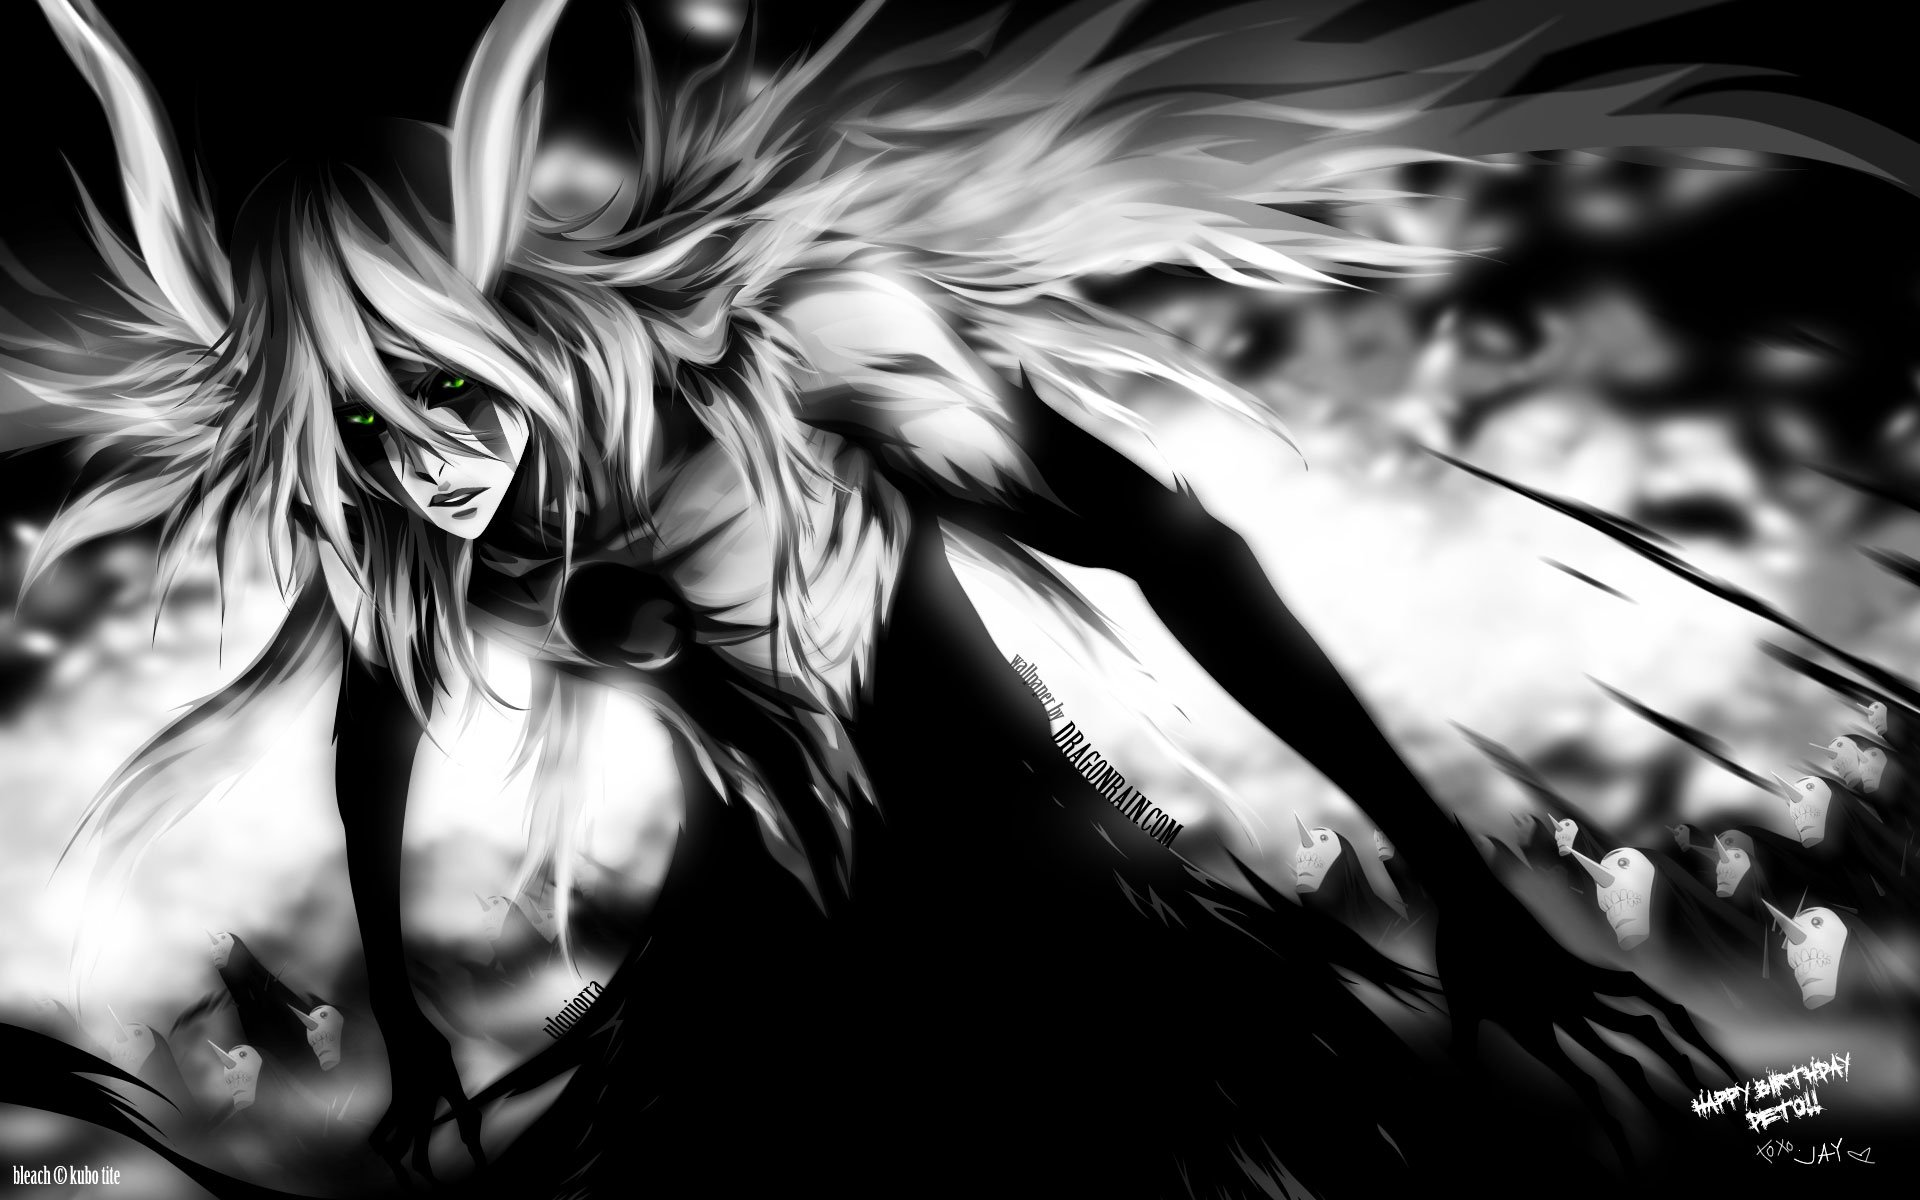 586 Ulquiorra Cifer Hd Wallpapers Background Images Wallpaper Abyss